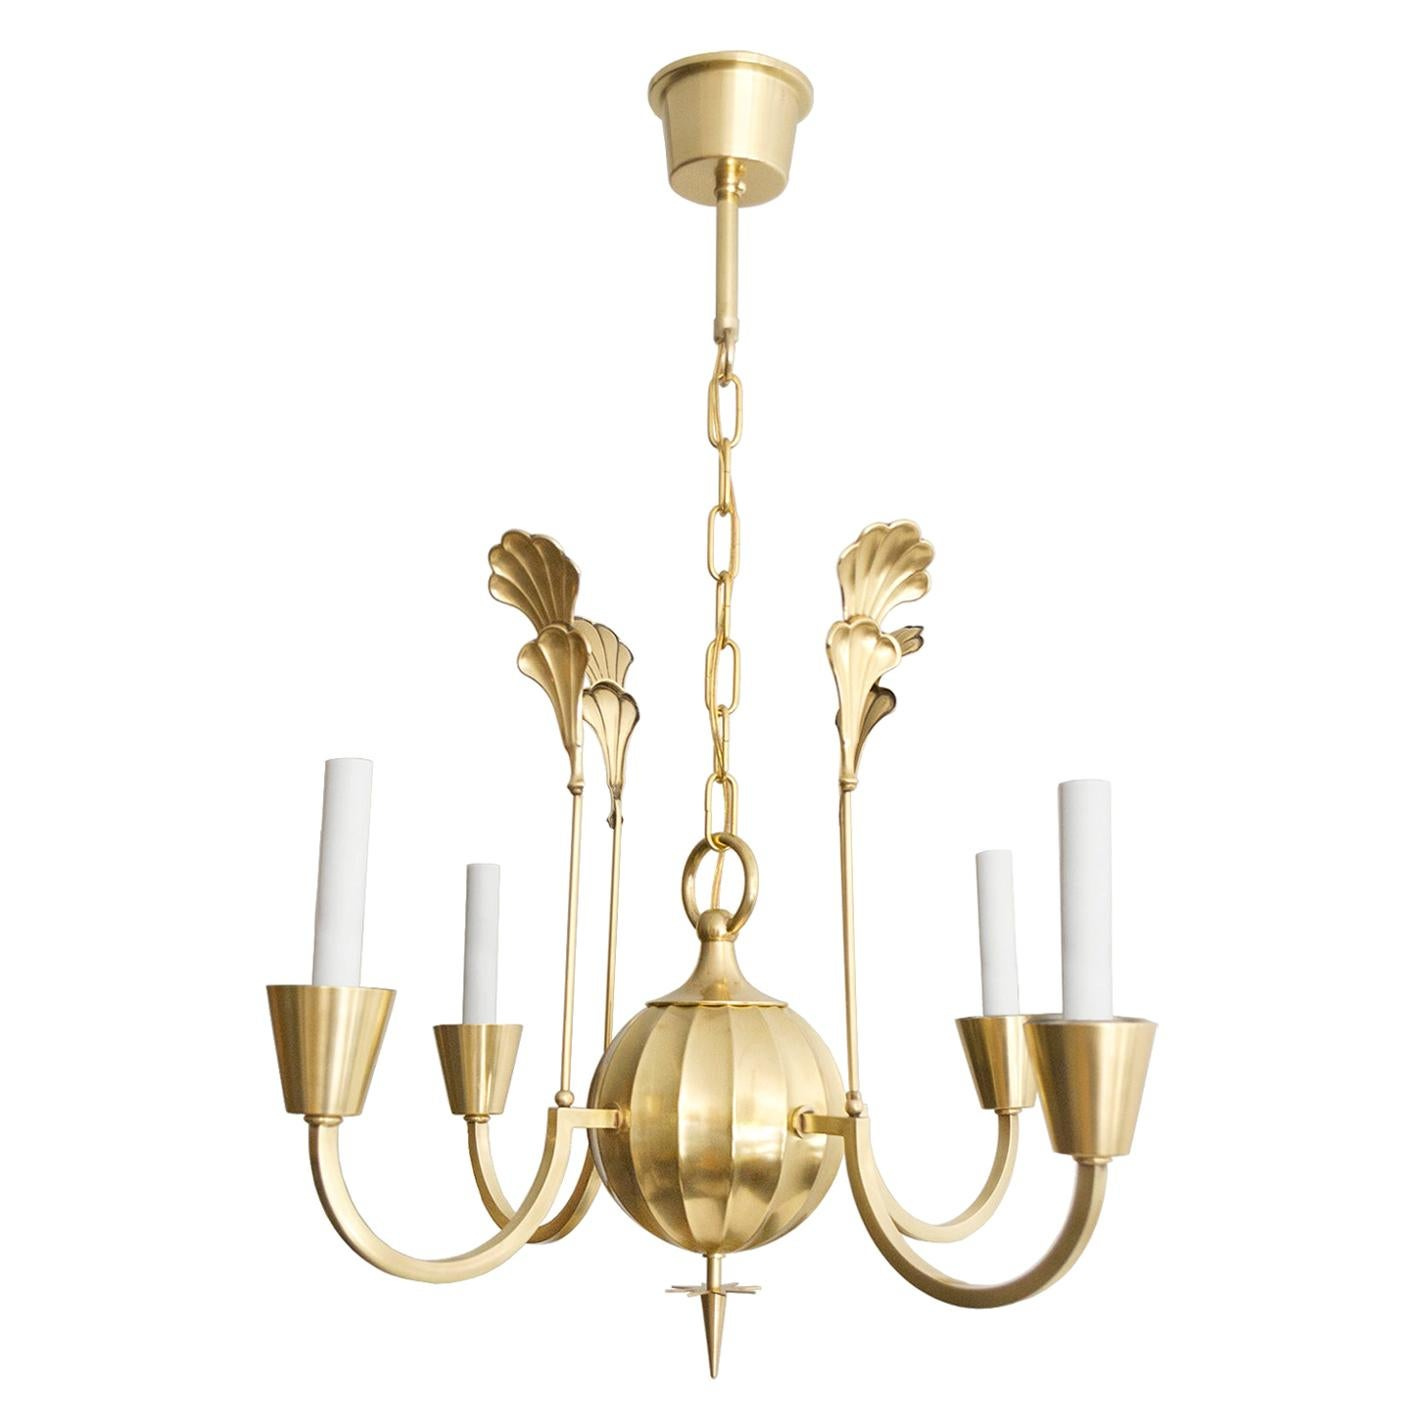 Scandinavian Modern Elis Bergh for C.G. Hallberg Chandelier Four Arms